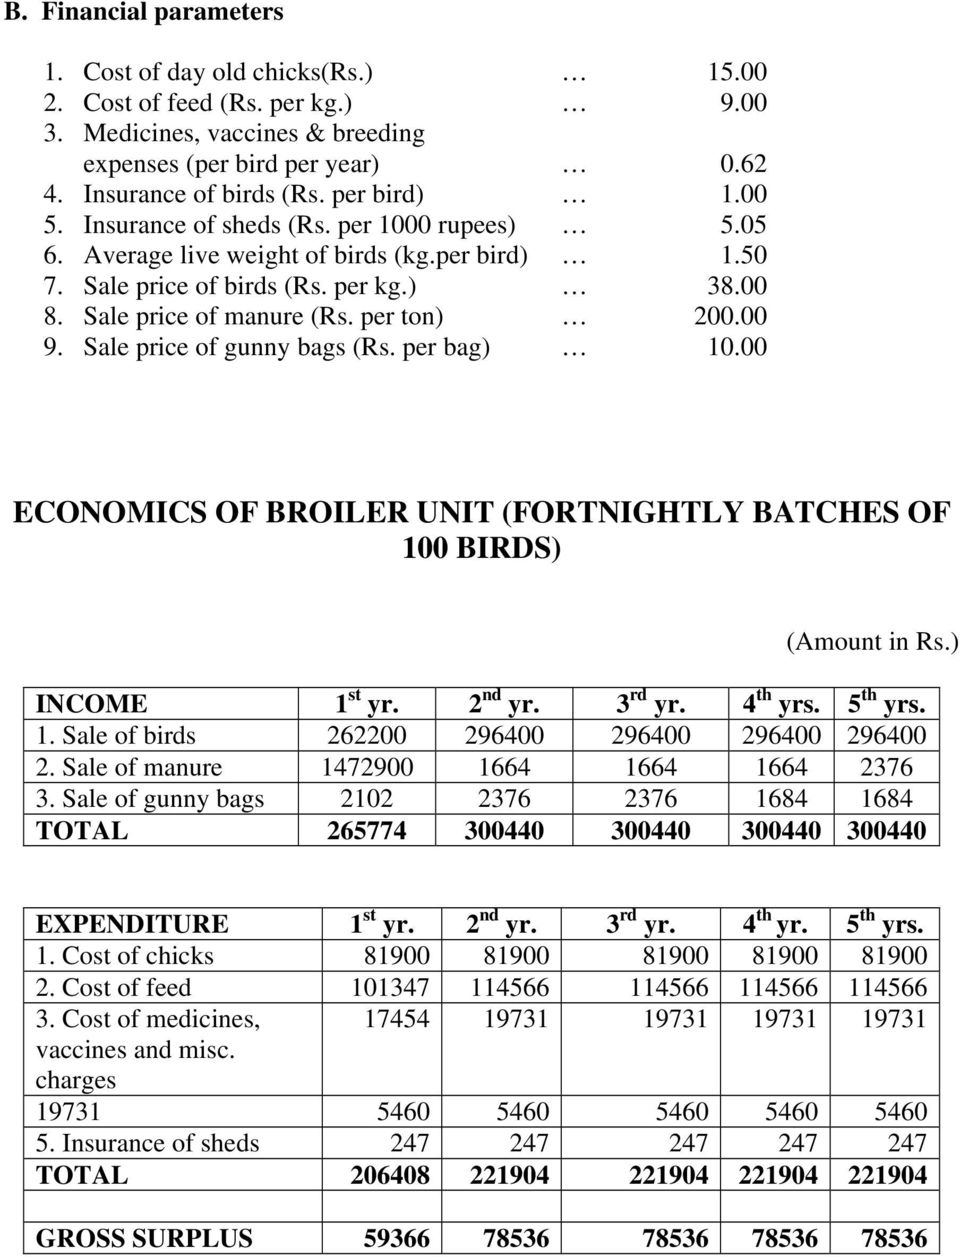 POULTRY COST OF REARING 100 BROILERS (FORTNIGHTLY BATCHES - PDF